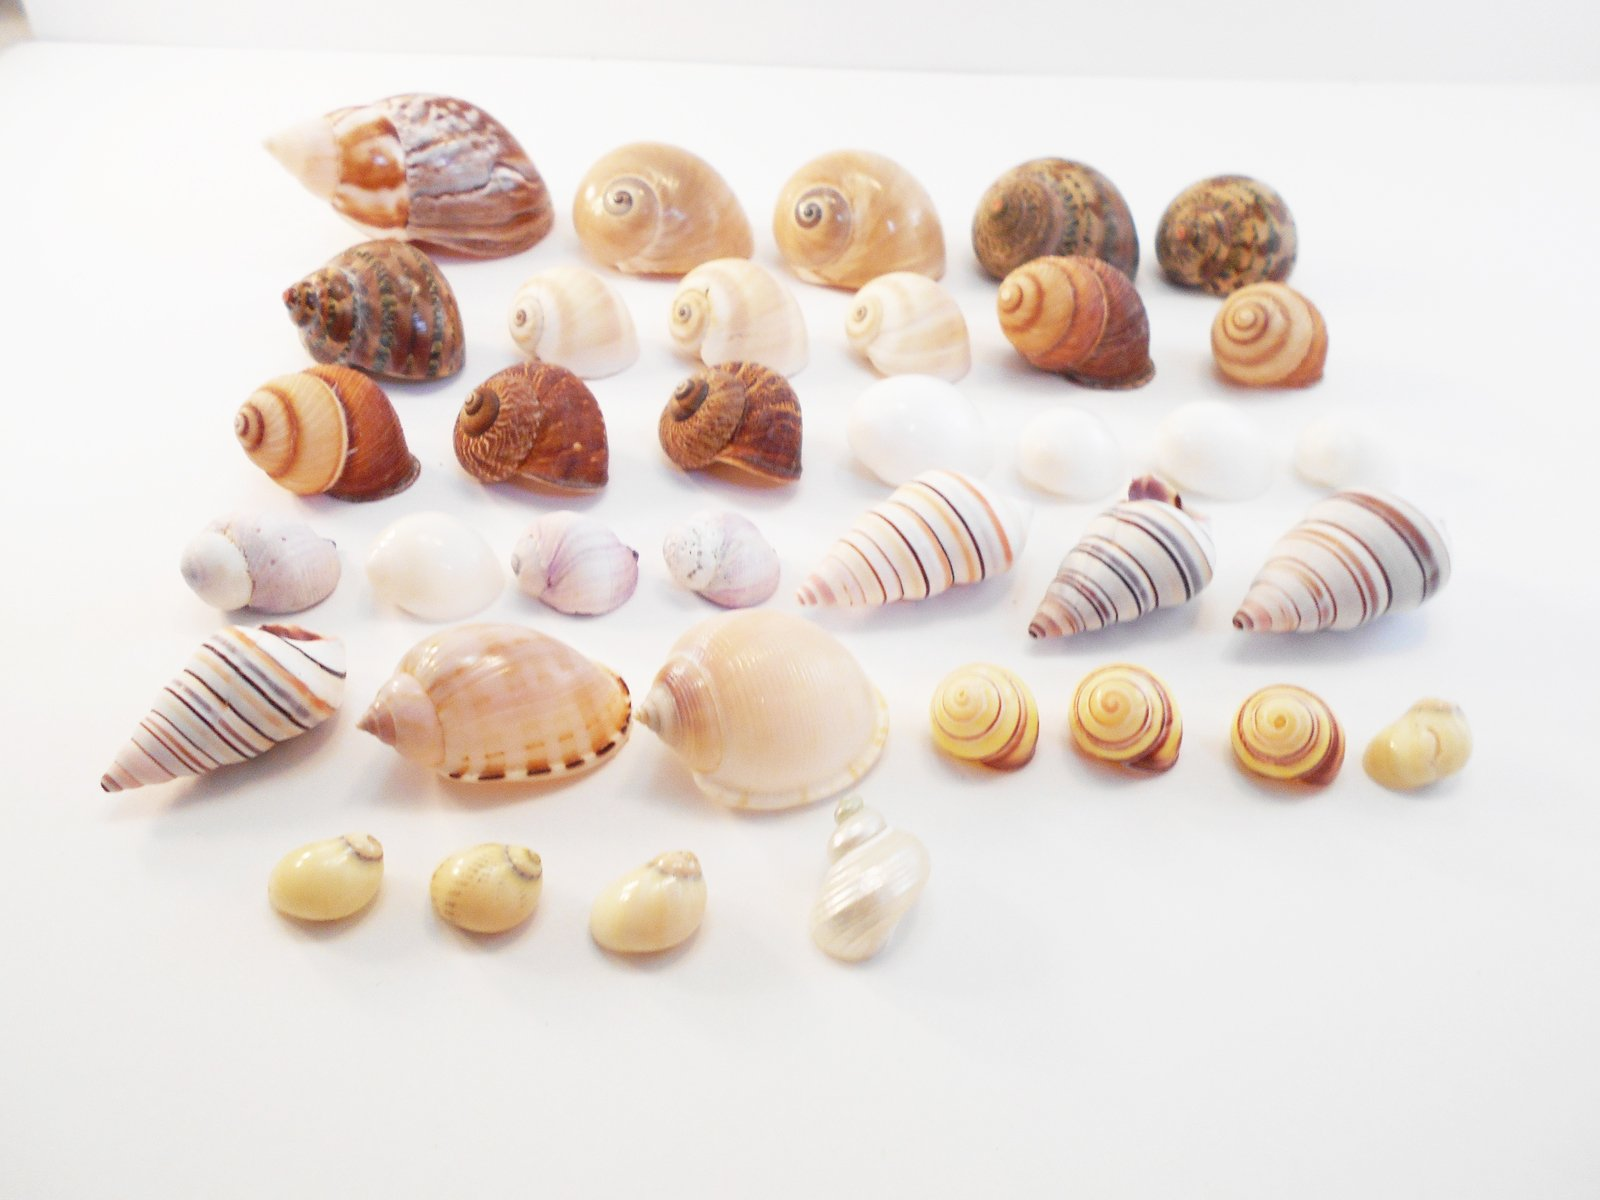 FSG - Select 35 Hermit Crab Shells Assorted Changing Seashells SMALL 1/2''-2'' Size (opening size 1/4'' - 1'') Beautiful